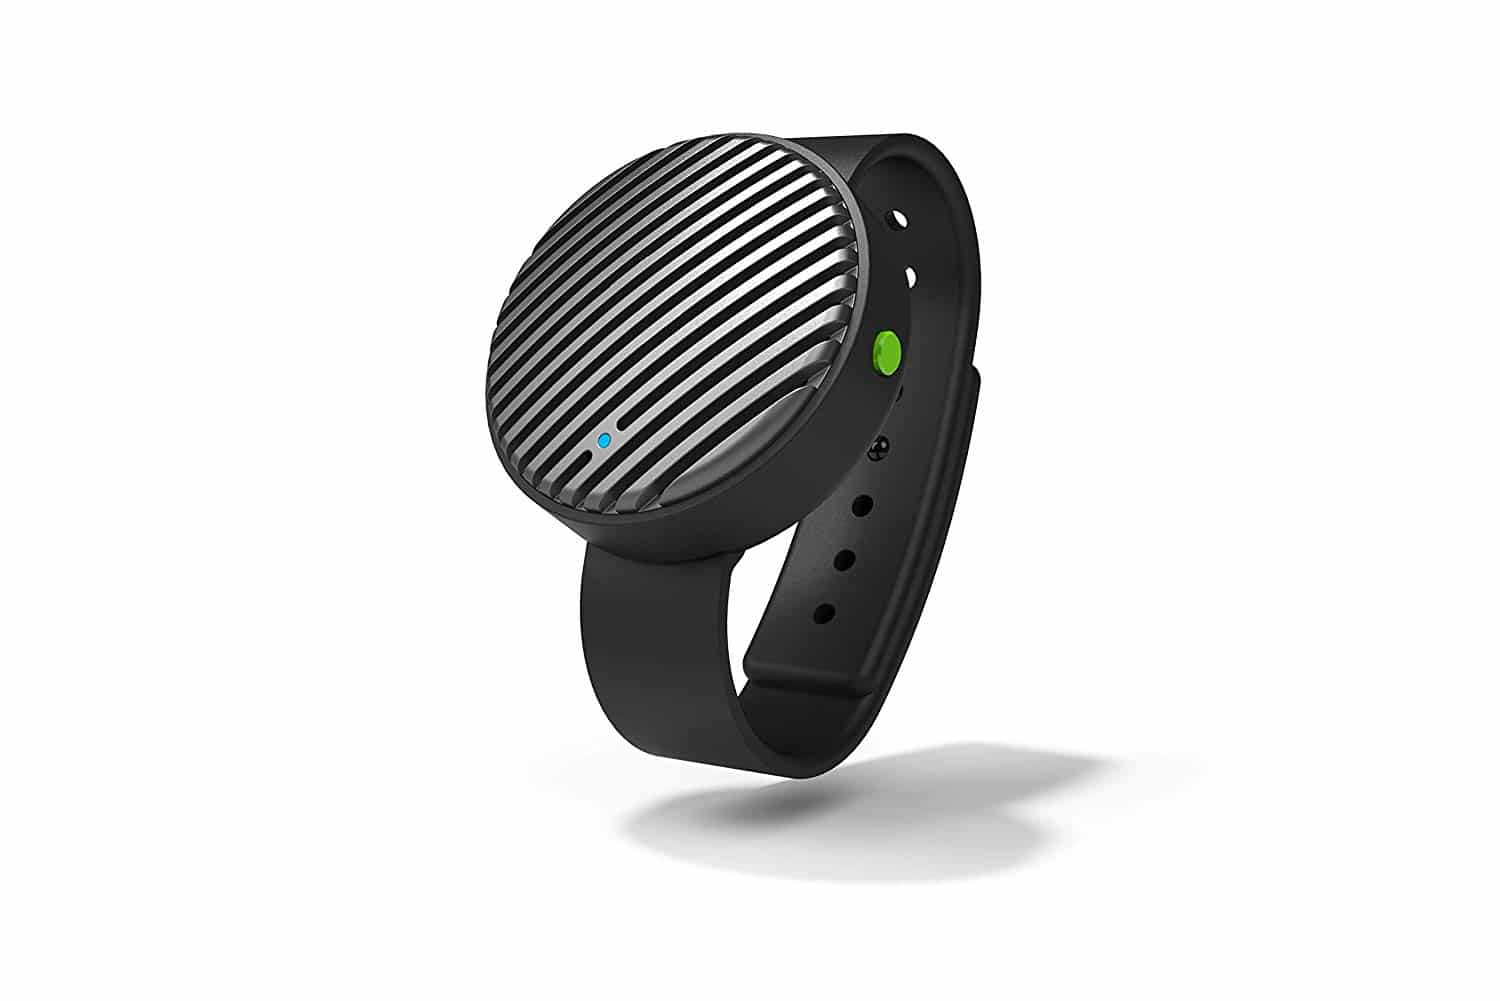 Tech-Life BoomBand –The World's Most Portable Speaker – Waterproof Wearable Bluetooth Speaker, Built-in Mic For Speakerphone–Running, Cycling, Hiking, Camping. 2x Volume of iPhone, Samsung